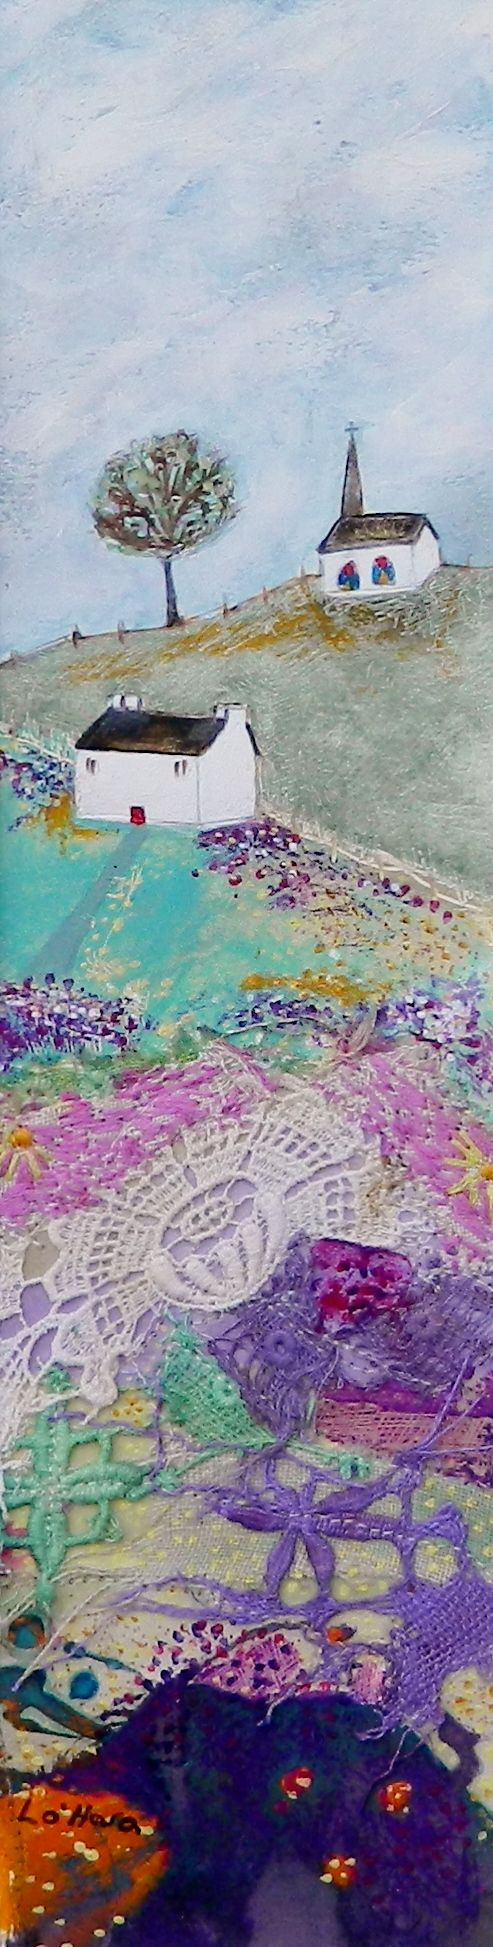 The chapel on the hill by Louise O'Hara   https://www.pinterest.com/louiseOHaraArt/my-work/